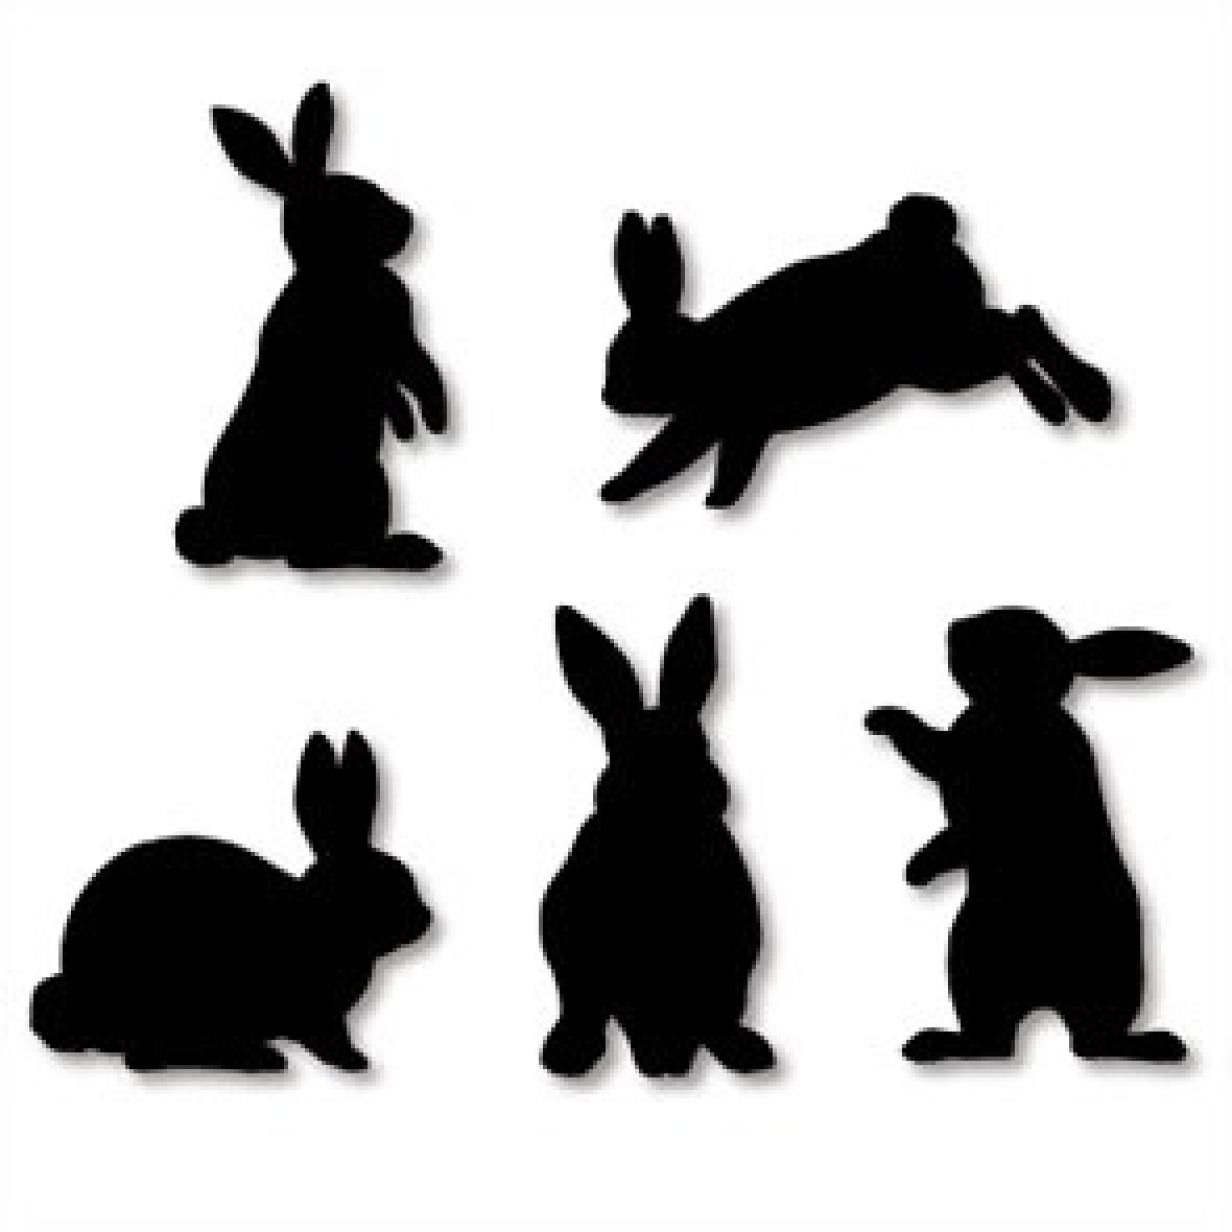 Wall Decorations Rabbit Black Wall Decorations Home And Living Rabbit Silhouette Decoration Black Rabbit Bunny Silhouette Rabbit Silhouette Bunny Templates